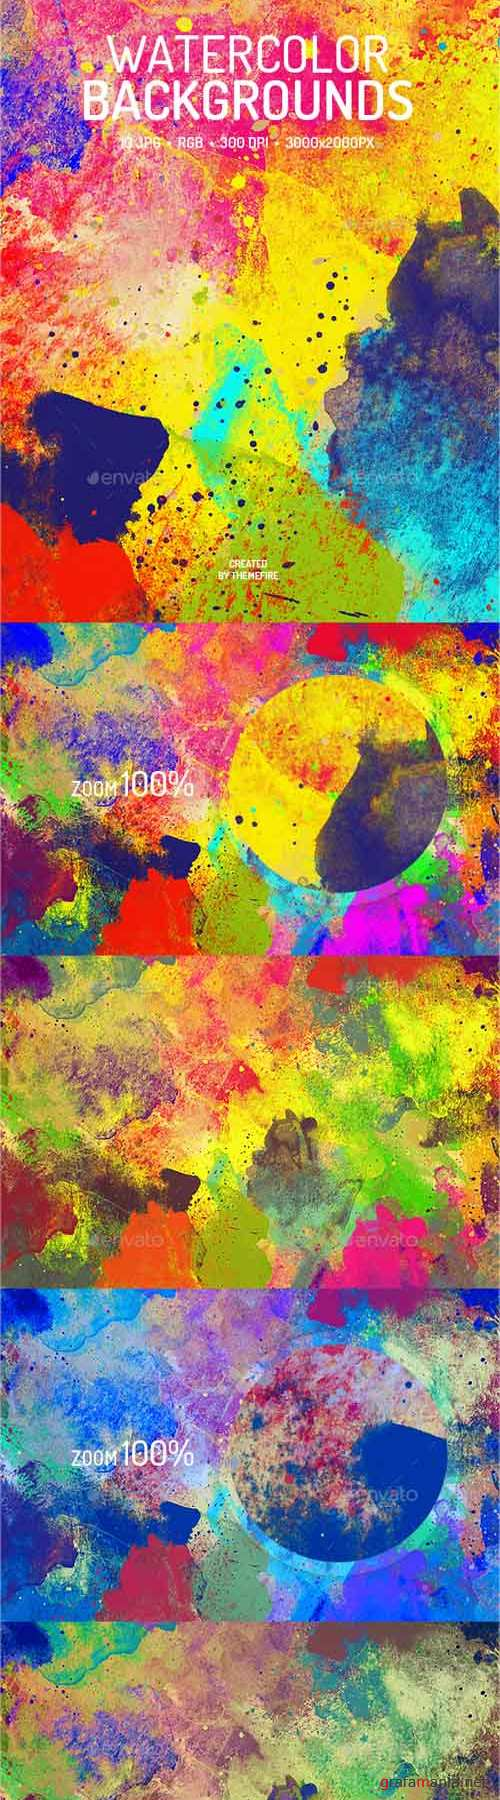 Abstract Watercolor Backgrounds 19356863